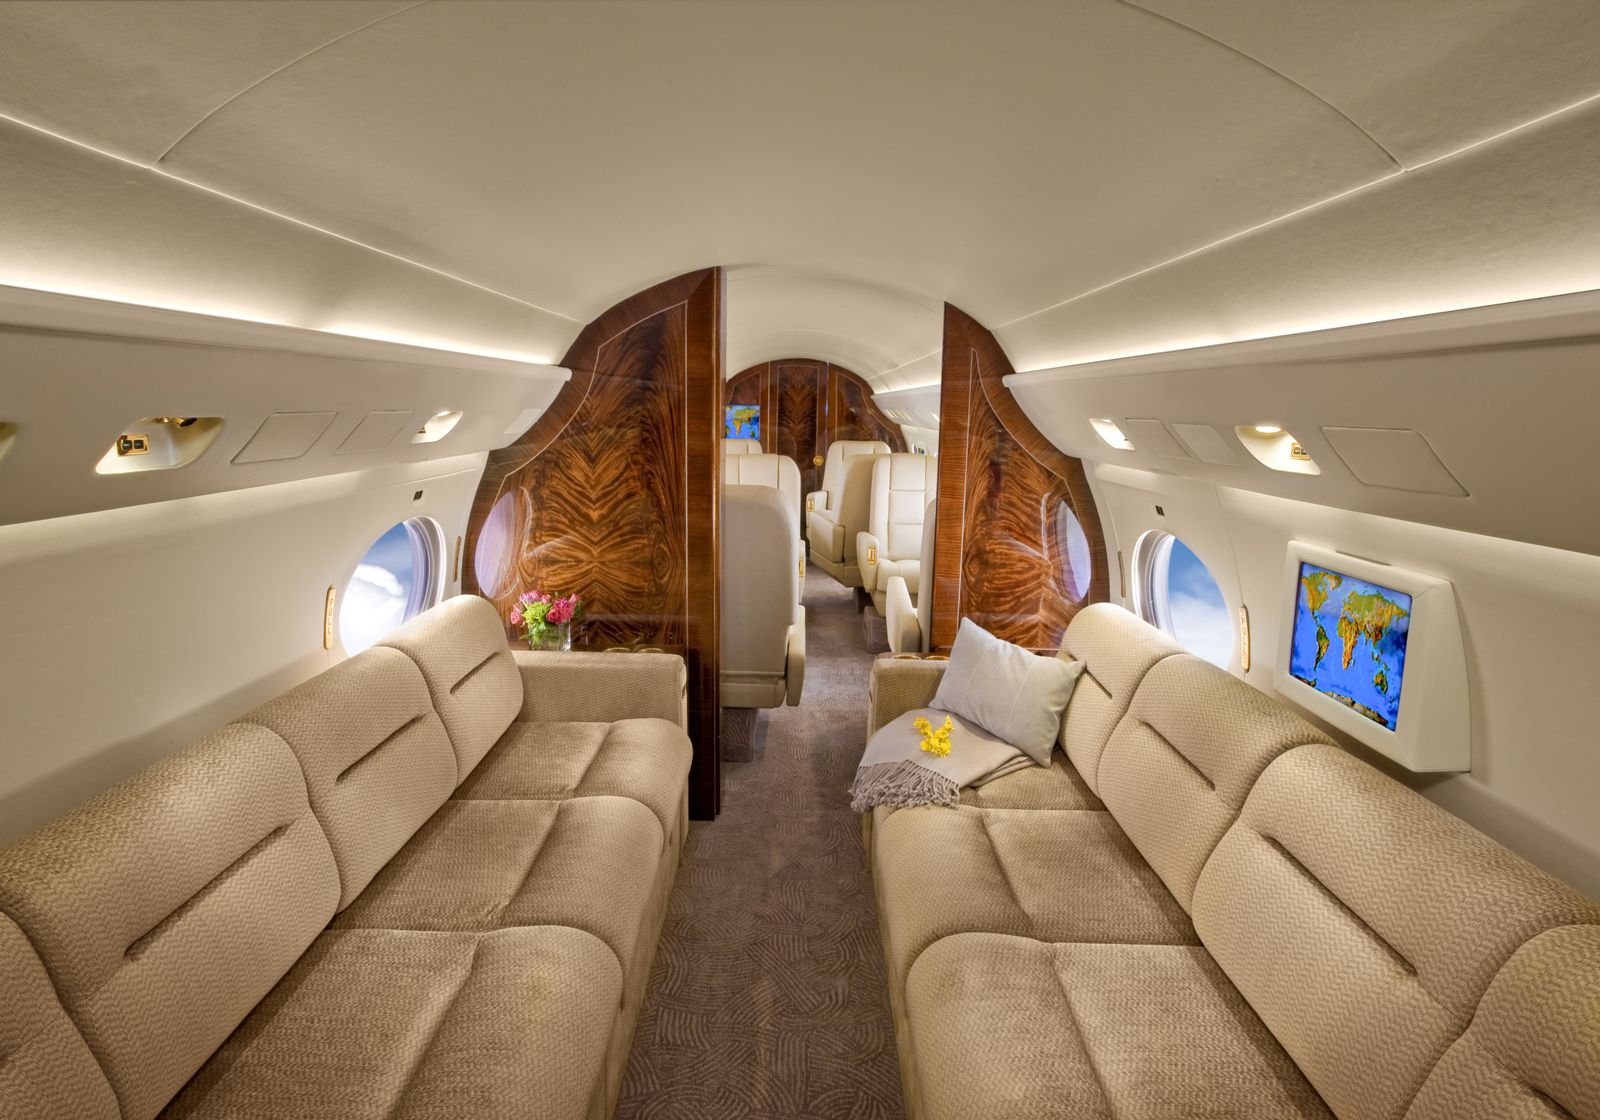 Gulfstream GIV  S/N 1114 for sale | gallery image: /userfiles/images/GIV_SN1114/trans-exec-g4-n763db-27.jpg